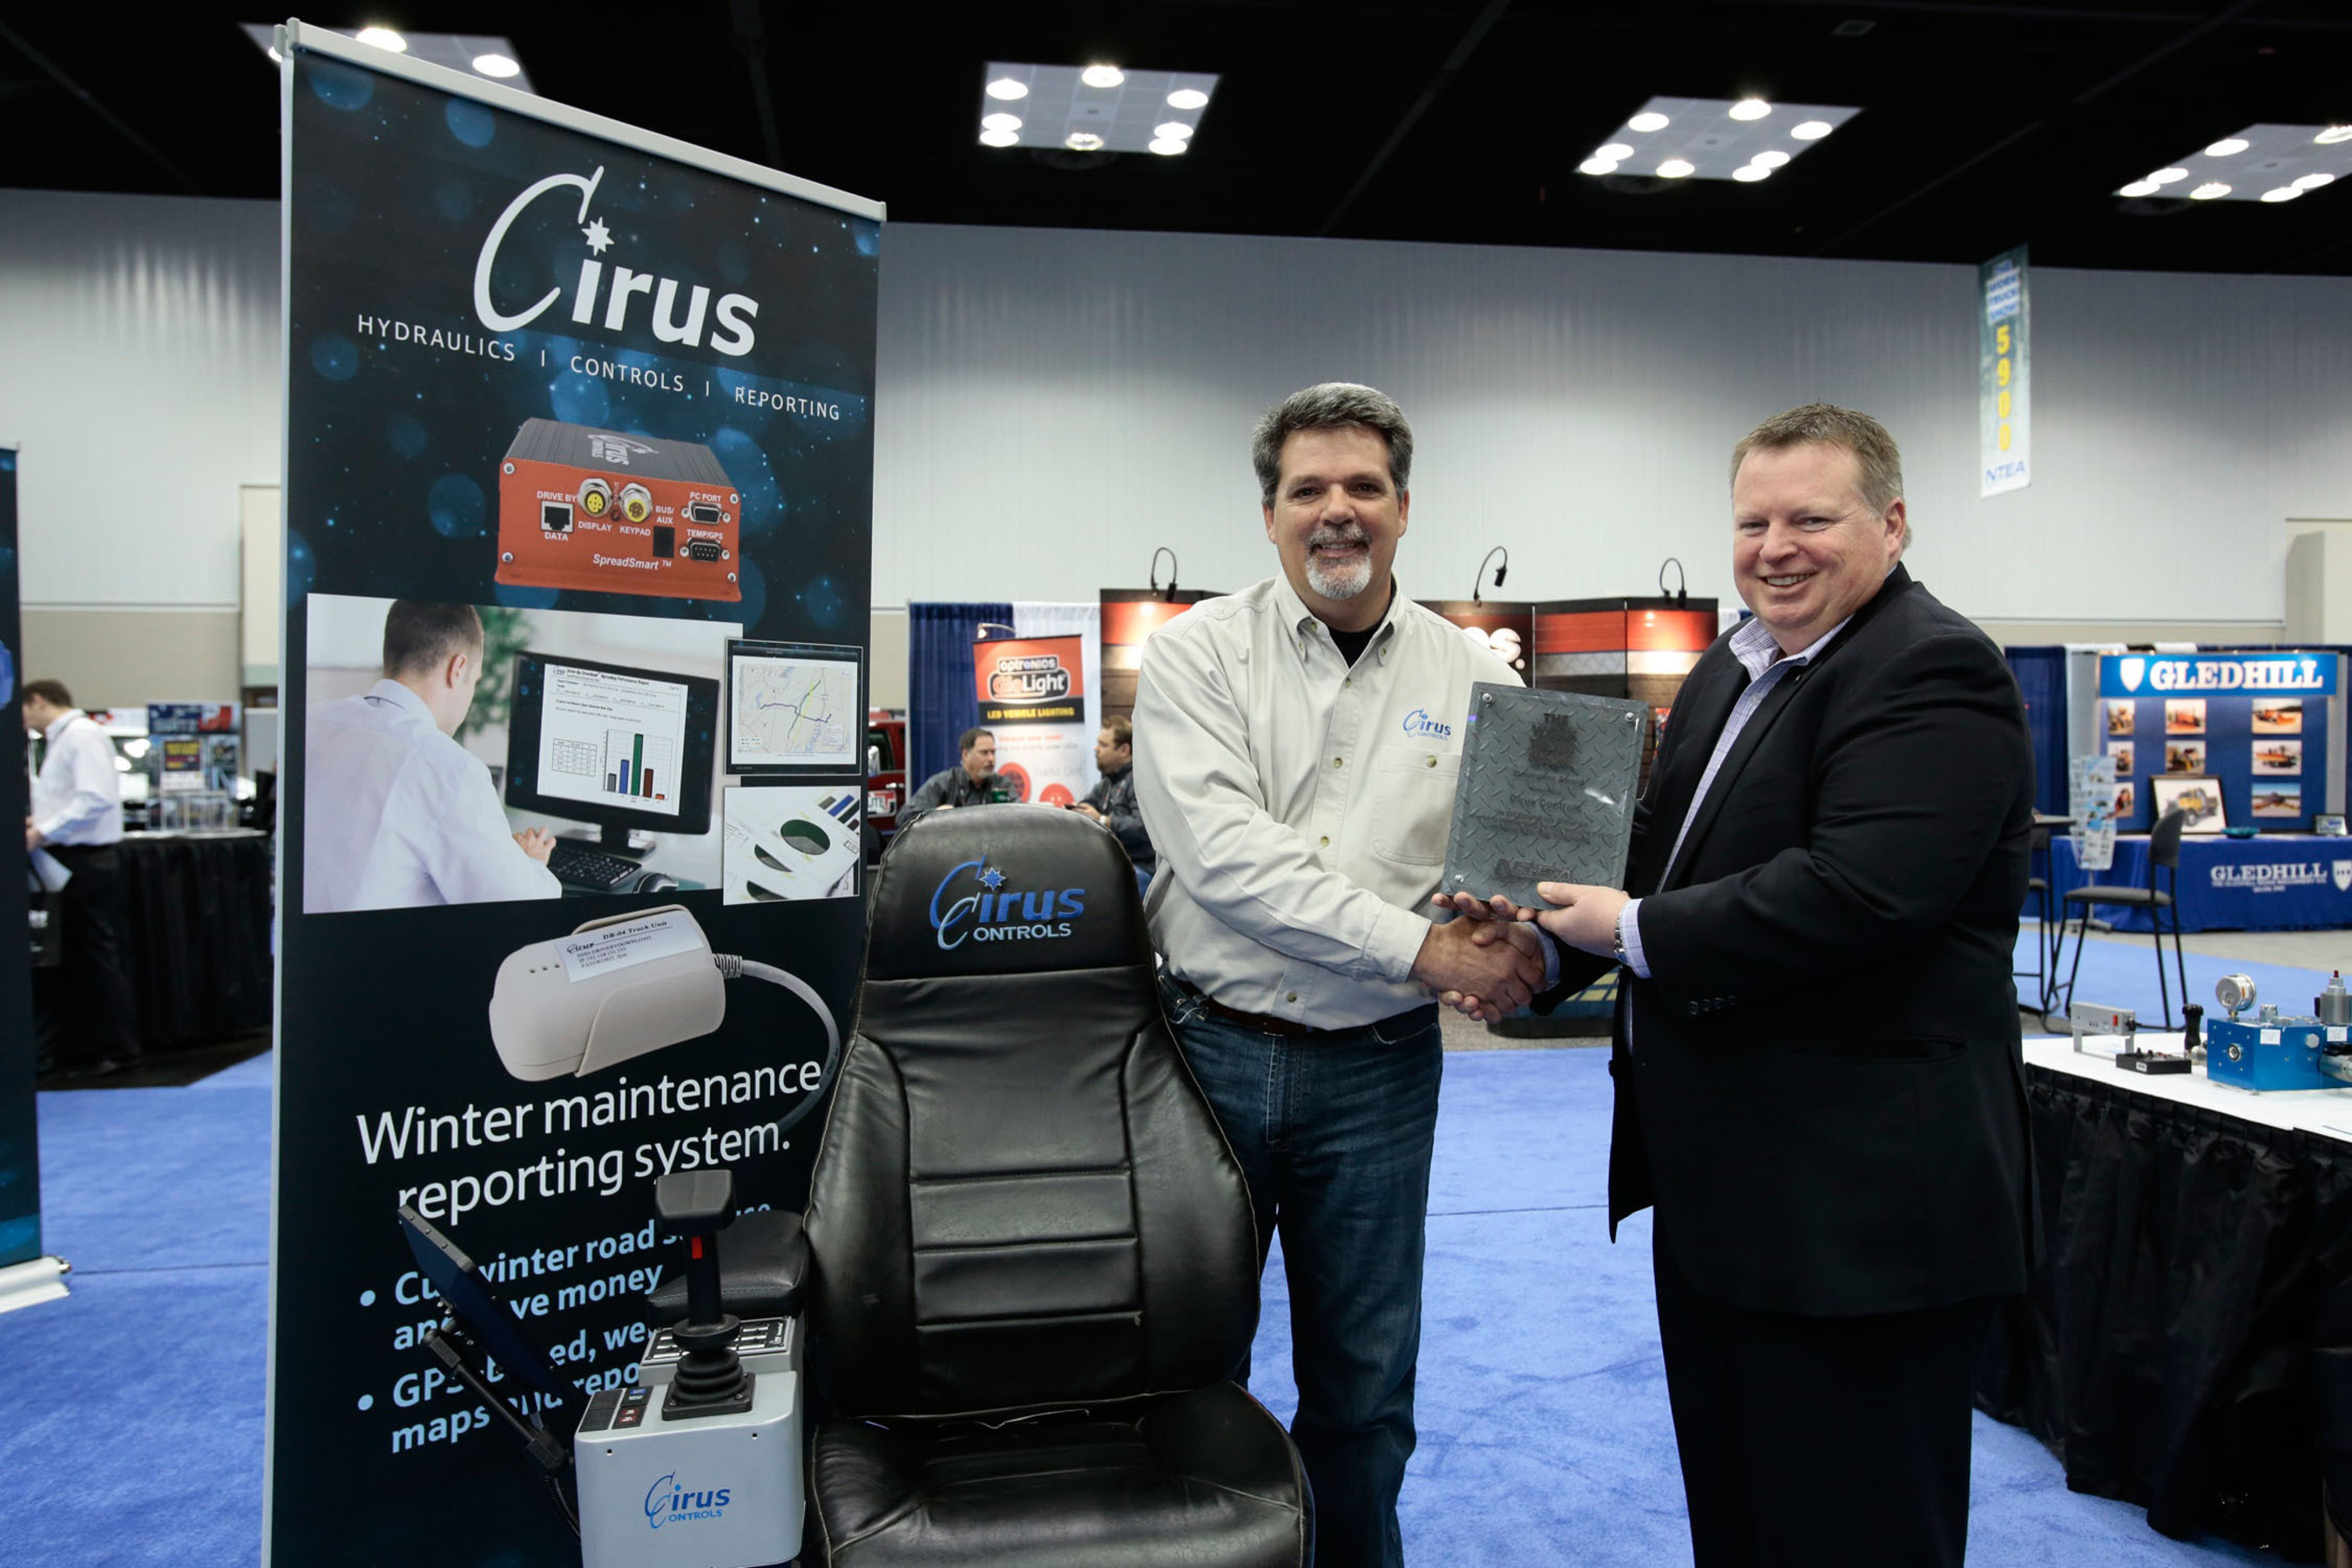 The Work Truck Show(R) 2014 Innovation Award was won by Cirus Controls for its GPS DataSmart(TM) winter maintenance reporting system. Dave McElrone, Cirus Controls western region manager (left), accepted the award from Steve Carey, executive director of NTEA – The Association for the Work Truck Industry (right), last week during The Work Truck Show 2014 at the Indiana Convention Center in Indianapolis, IN. (PRNewsFoto/NTEA) (PRNewsFoto/NTEA)